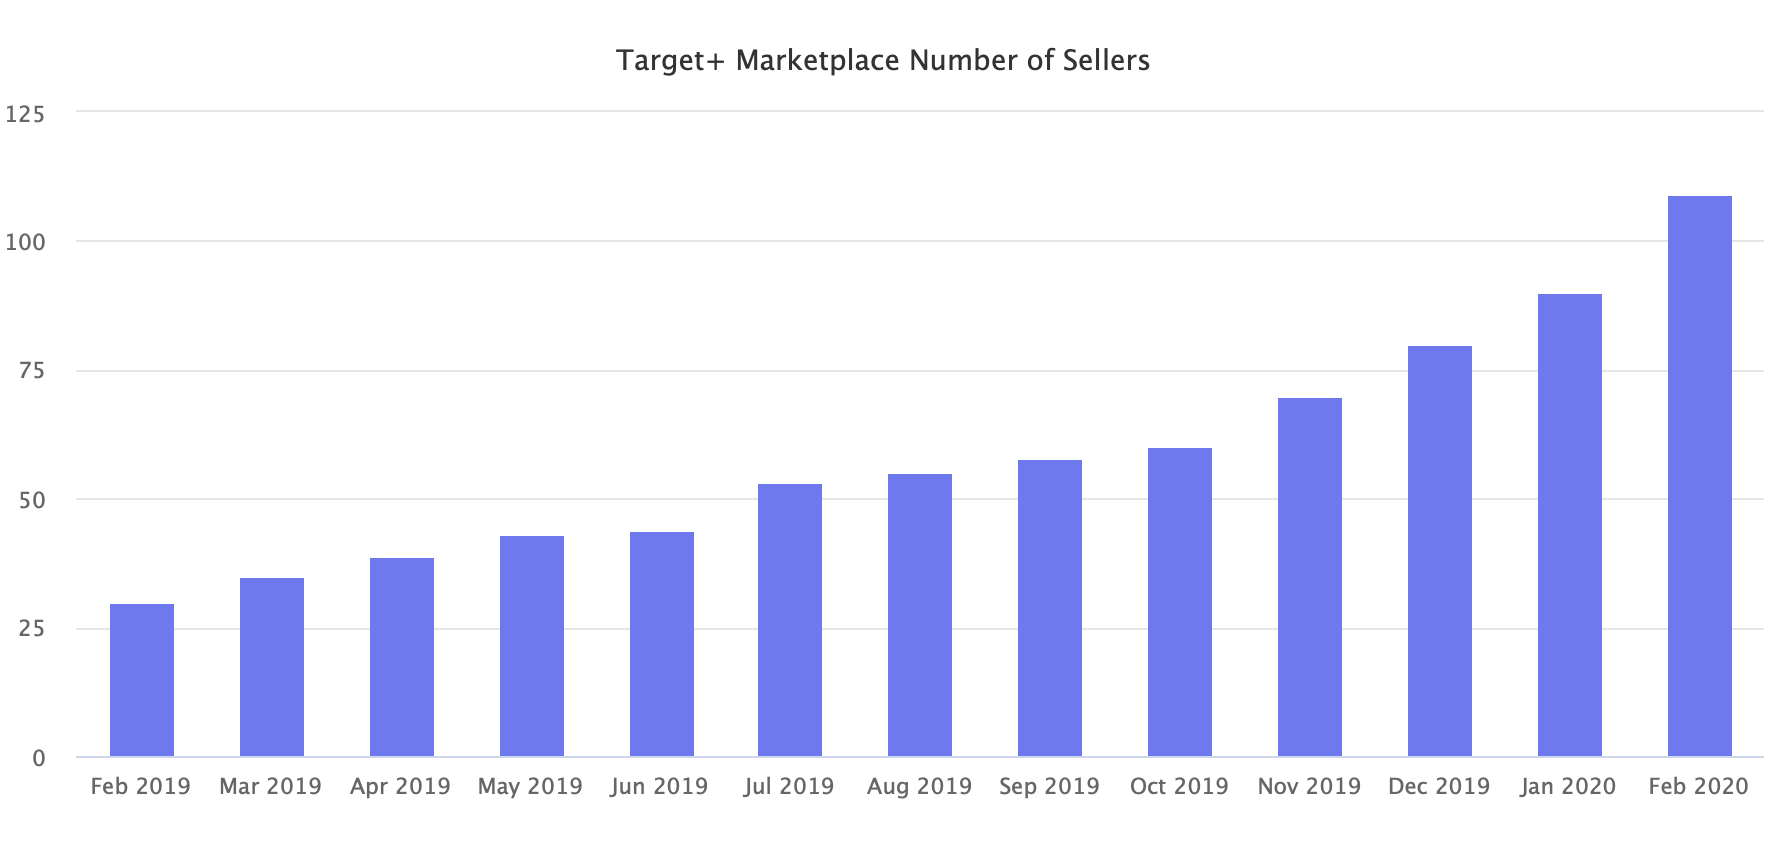 Target+ Marketplace Number of Sellers